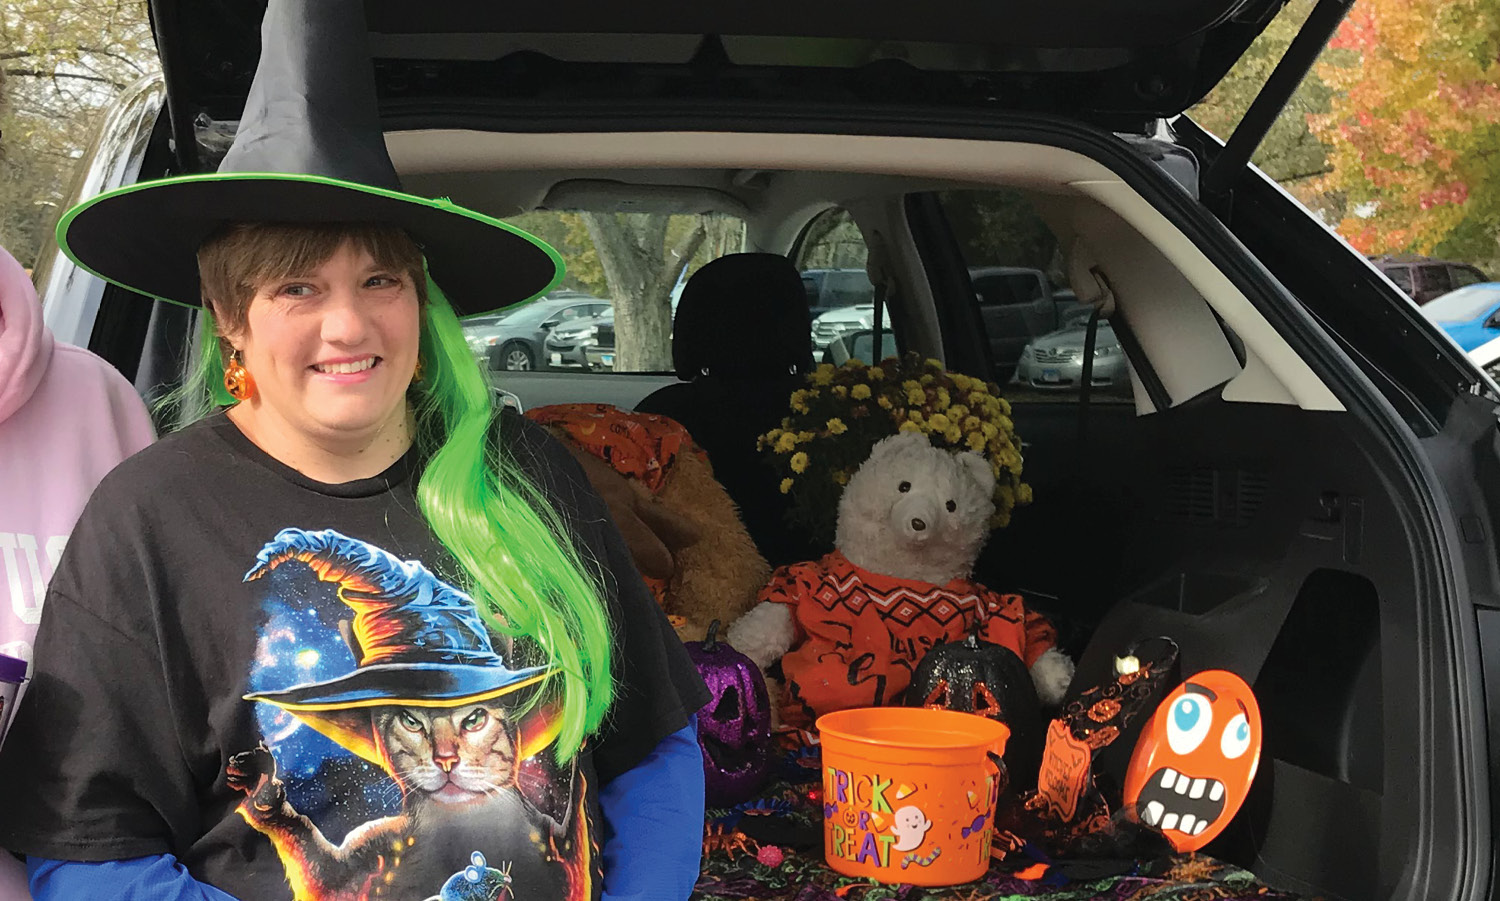 Woman wearing a witch hat, posing in front of her trunk that is decorated for Halloween.